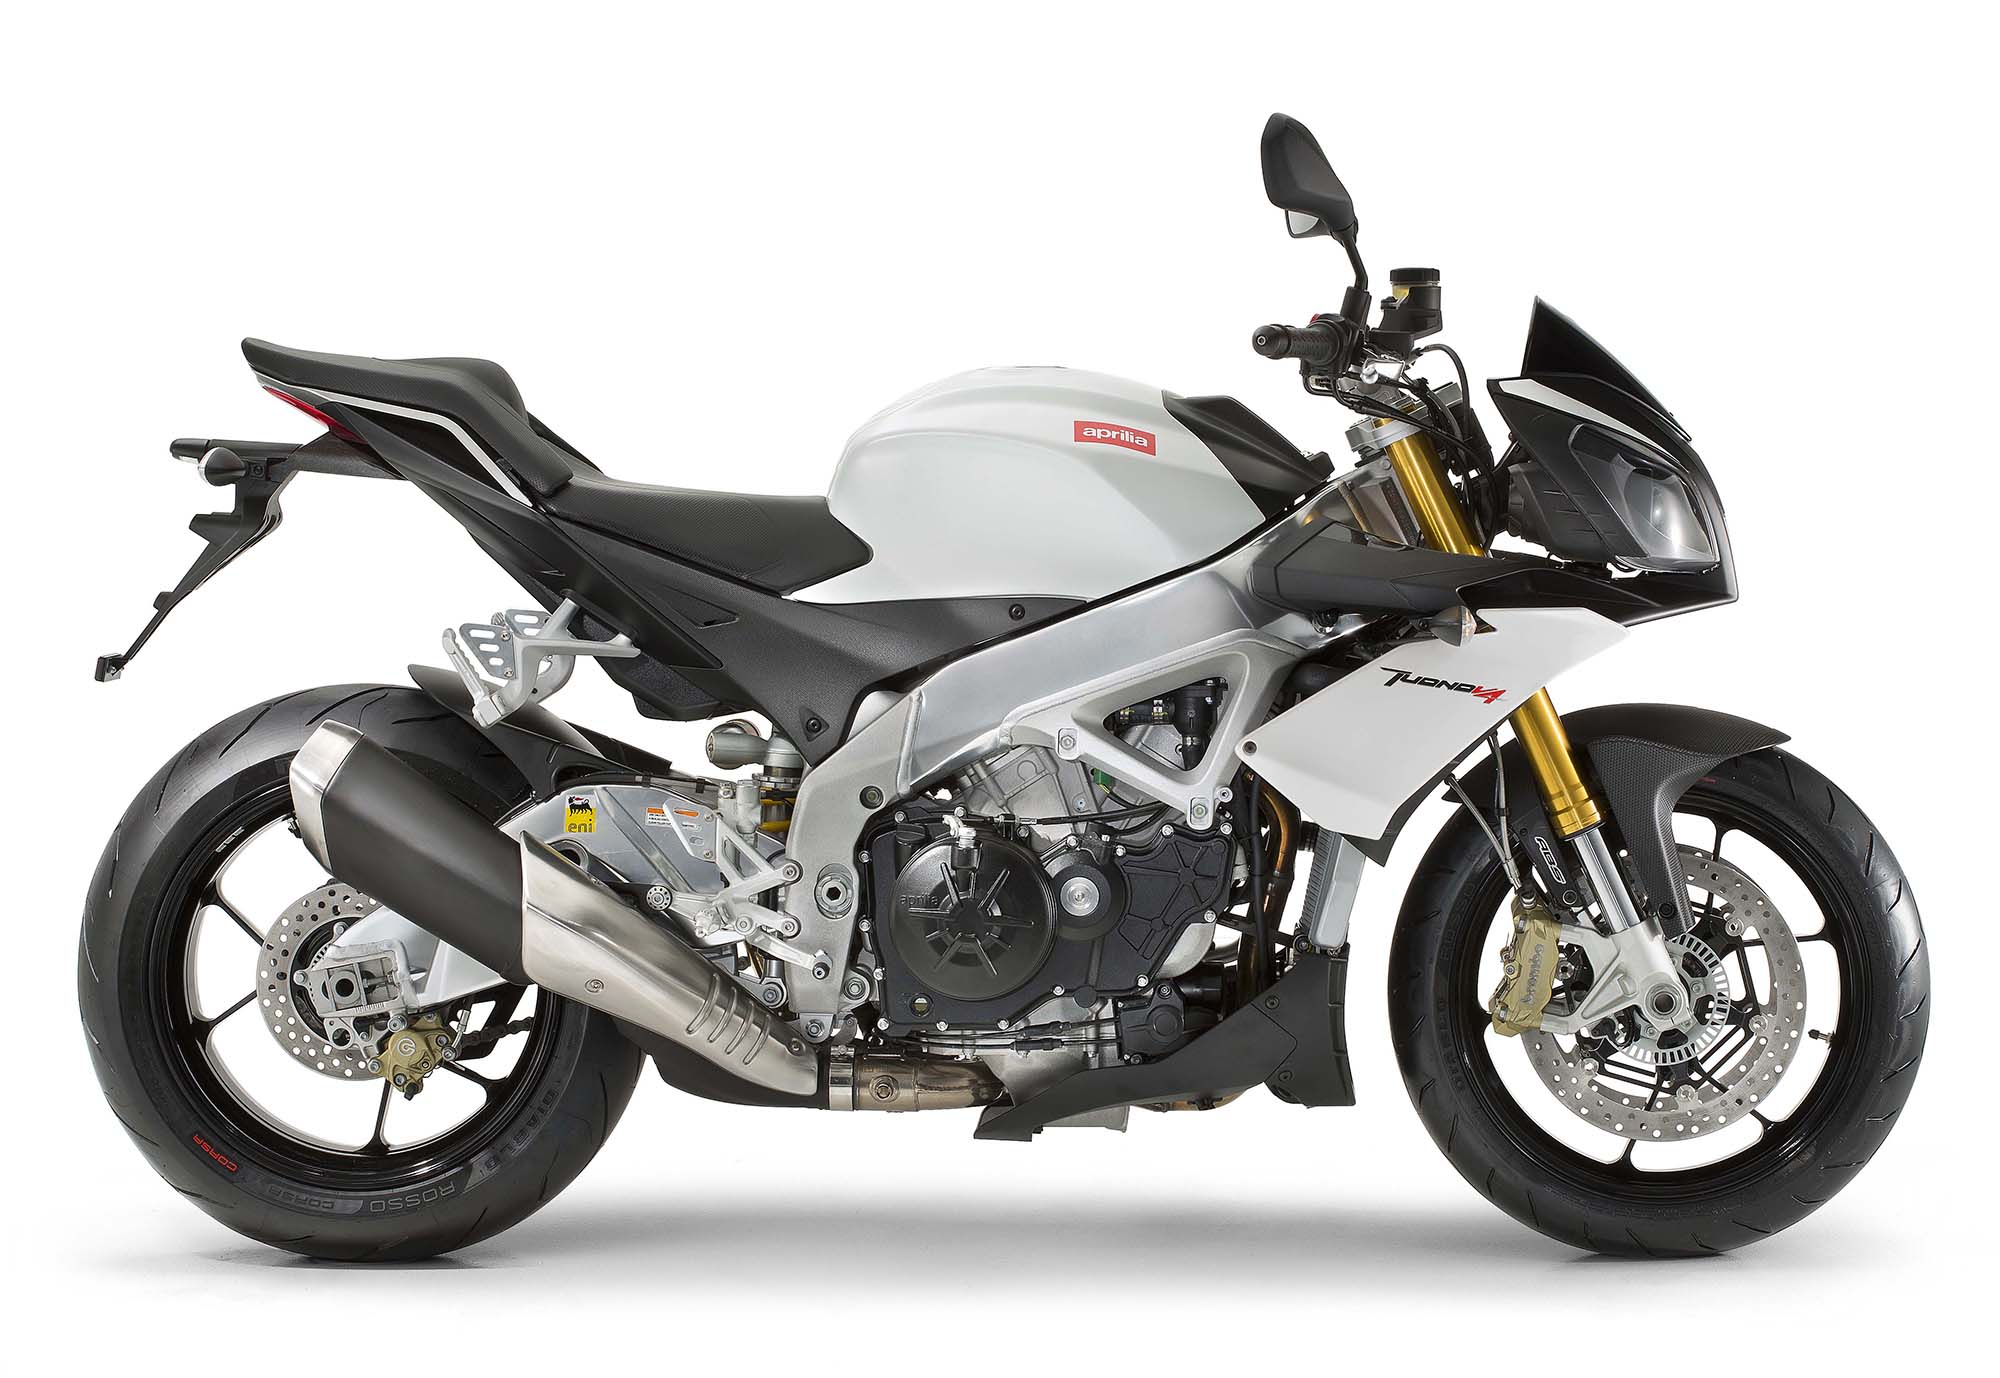 2014 aprilia tuono v4 r aprc abs coming to the usa asphalt rubber. Black Bedroom Furniture Sets. Home Design Ideas